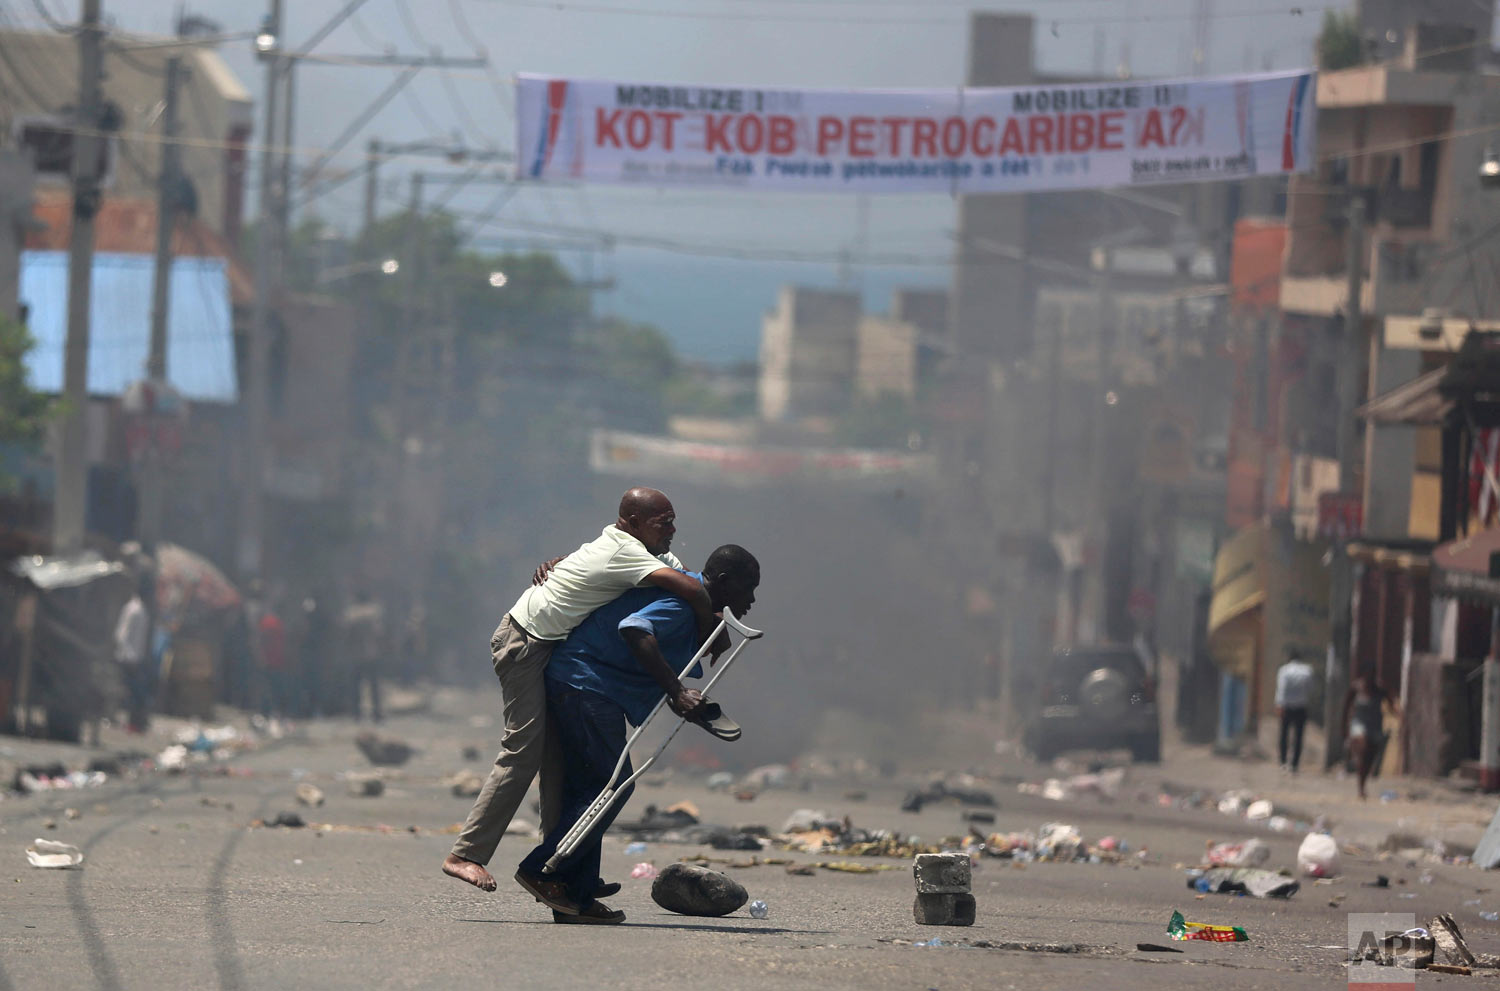 In this Sept. 9, 2018 photo, a handicapped man on crutches is carried amid police tear gas as protesters demand to know how the government spent Petro Caribe funds, intended to help Haiti rebuild after the 2010 earthquake, in Port-au-Prince, Haiti. Protesters say projects are unfinished and officials inflated costs to steal money. (AP Photo/Dieu Nalio Chery)